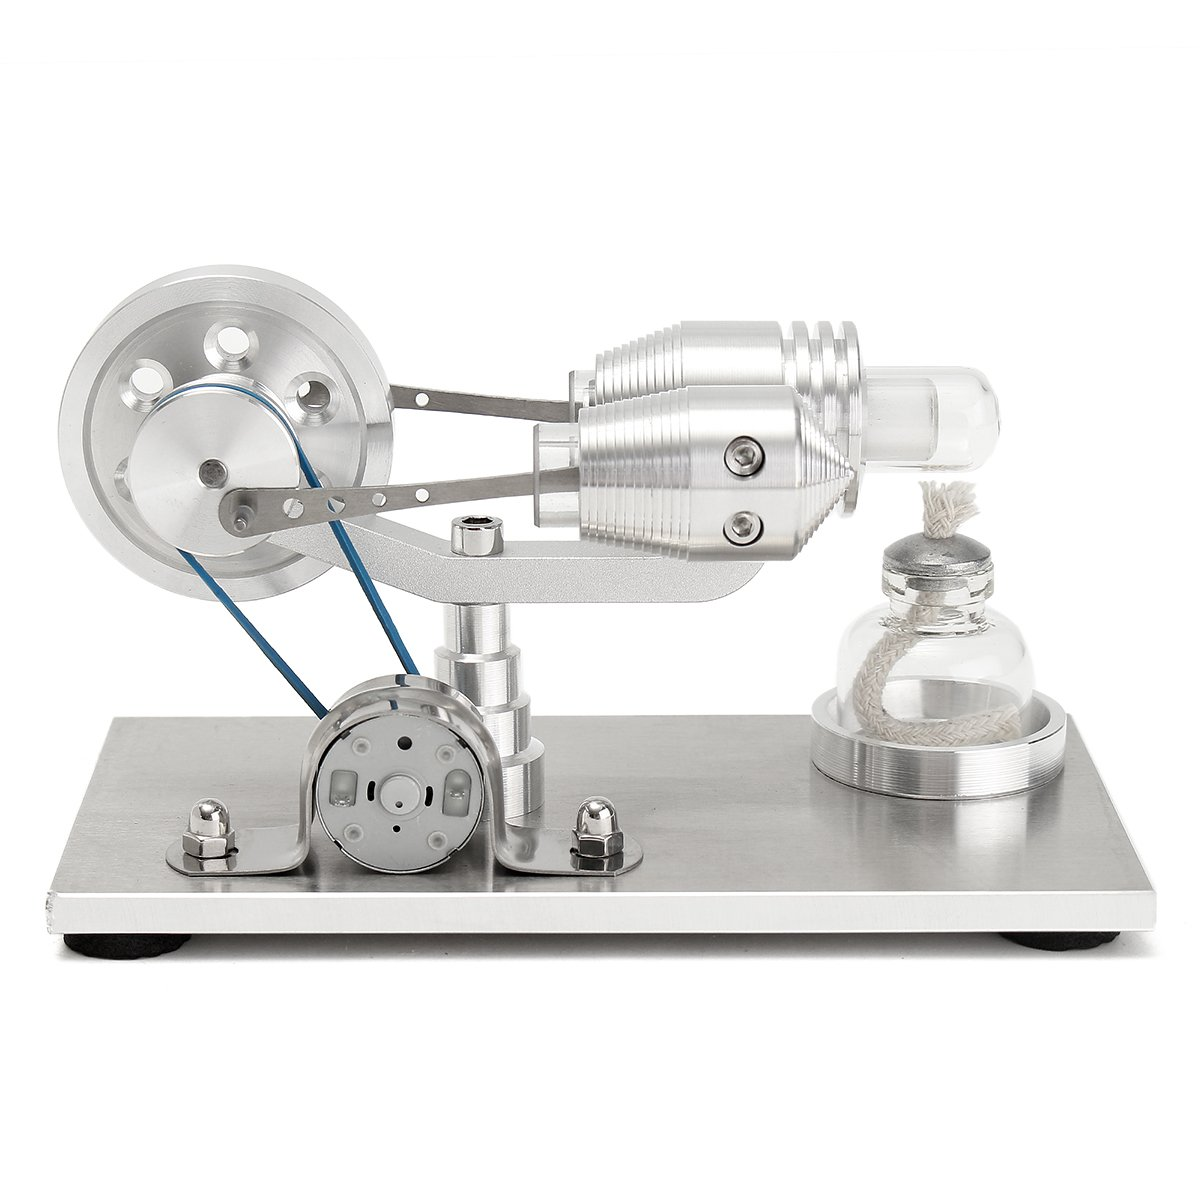 HITSAN Stainless Steel Mini Hot Air Stirling Engine Motor Model Educational Toy Kits One Piece